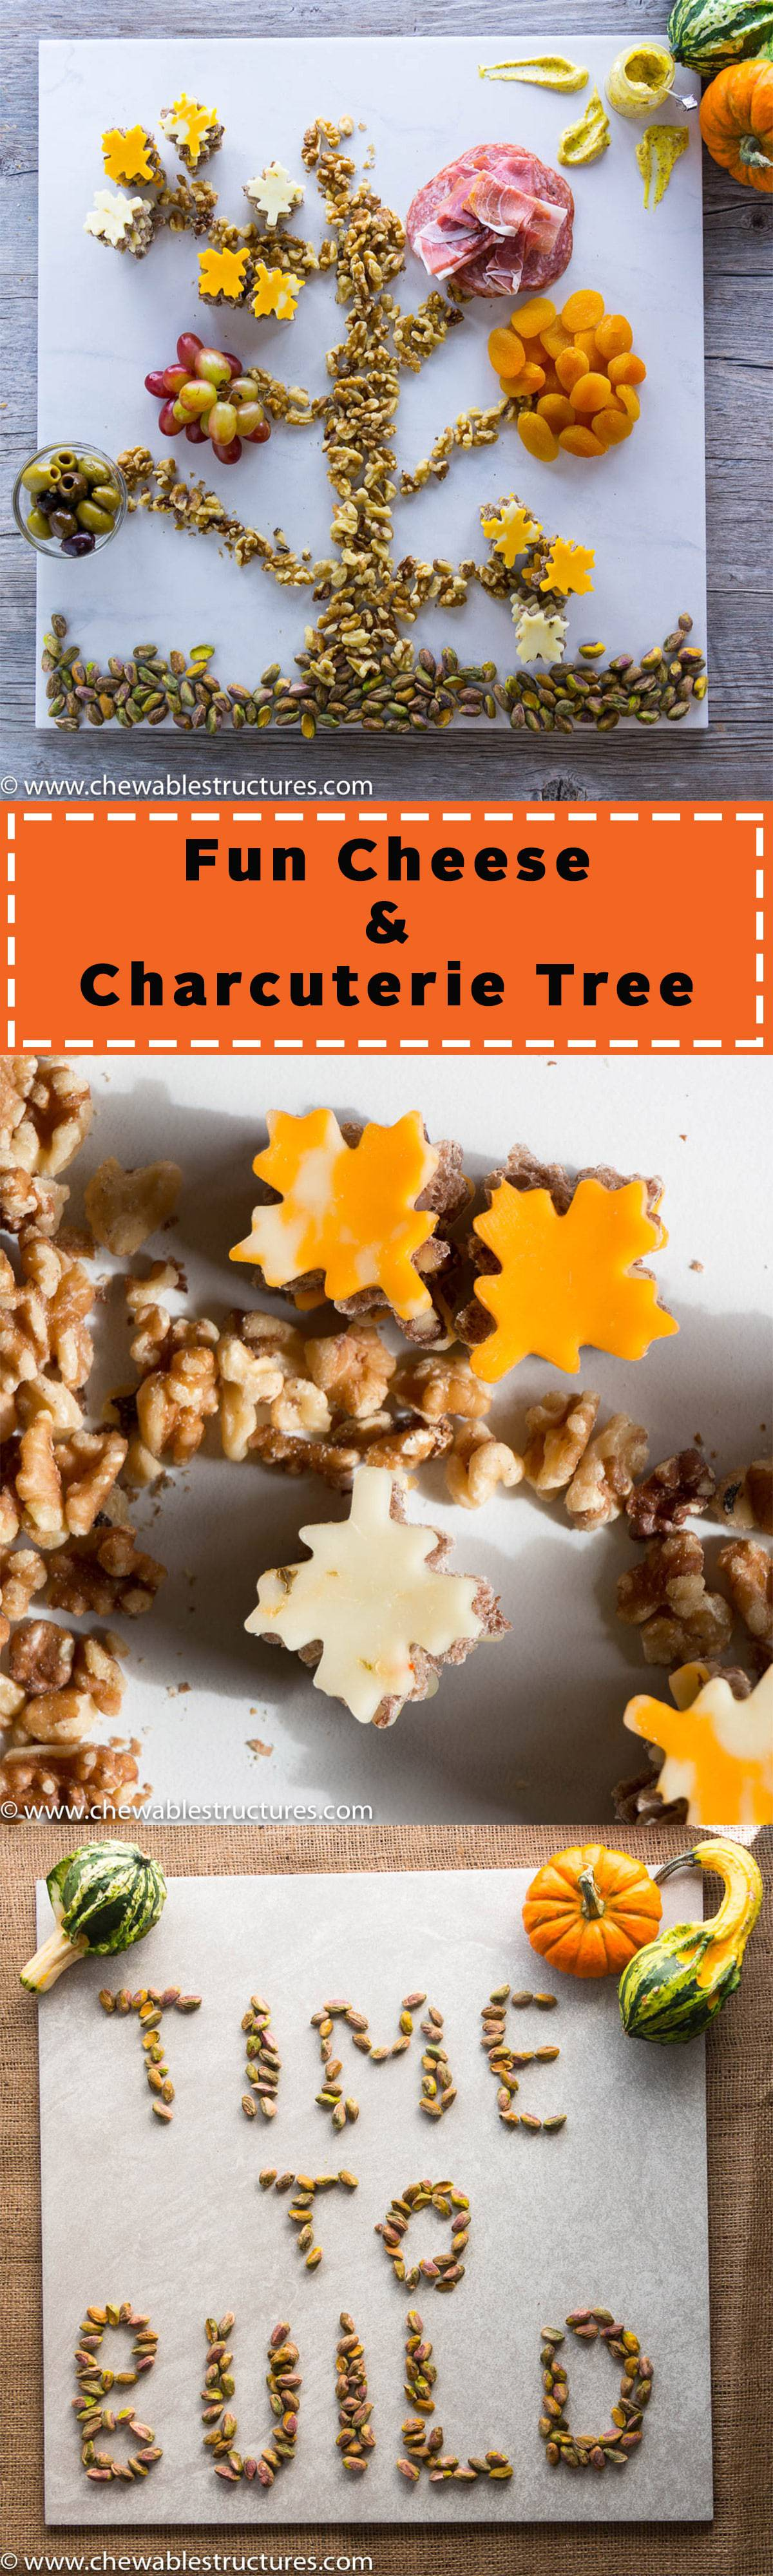 Are you looking for fun snacks to make this holiday? It only takes a few minutes to build this fun cheese and charcuterie tree. Check out these fun Thanksgiving recipes and fun snacks that you can make as appetizers and starters for the holiday season.